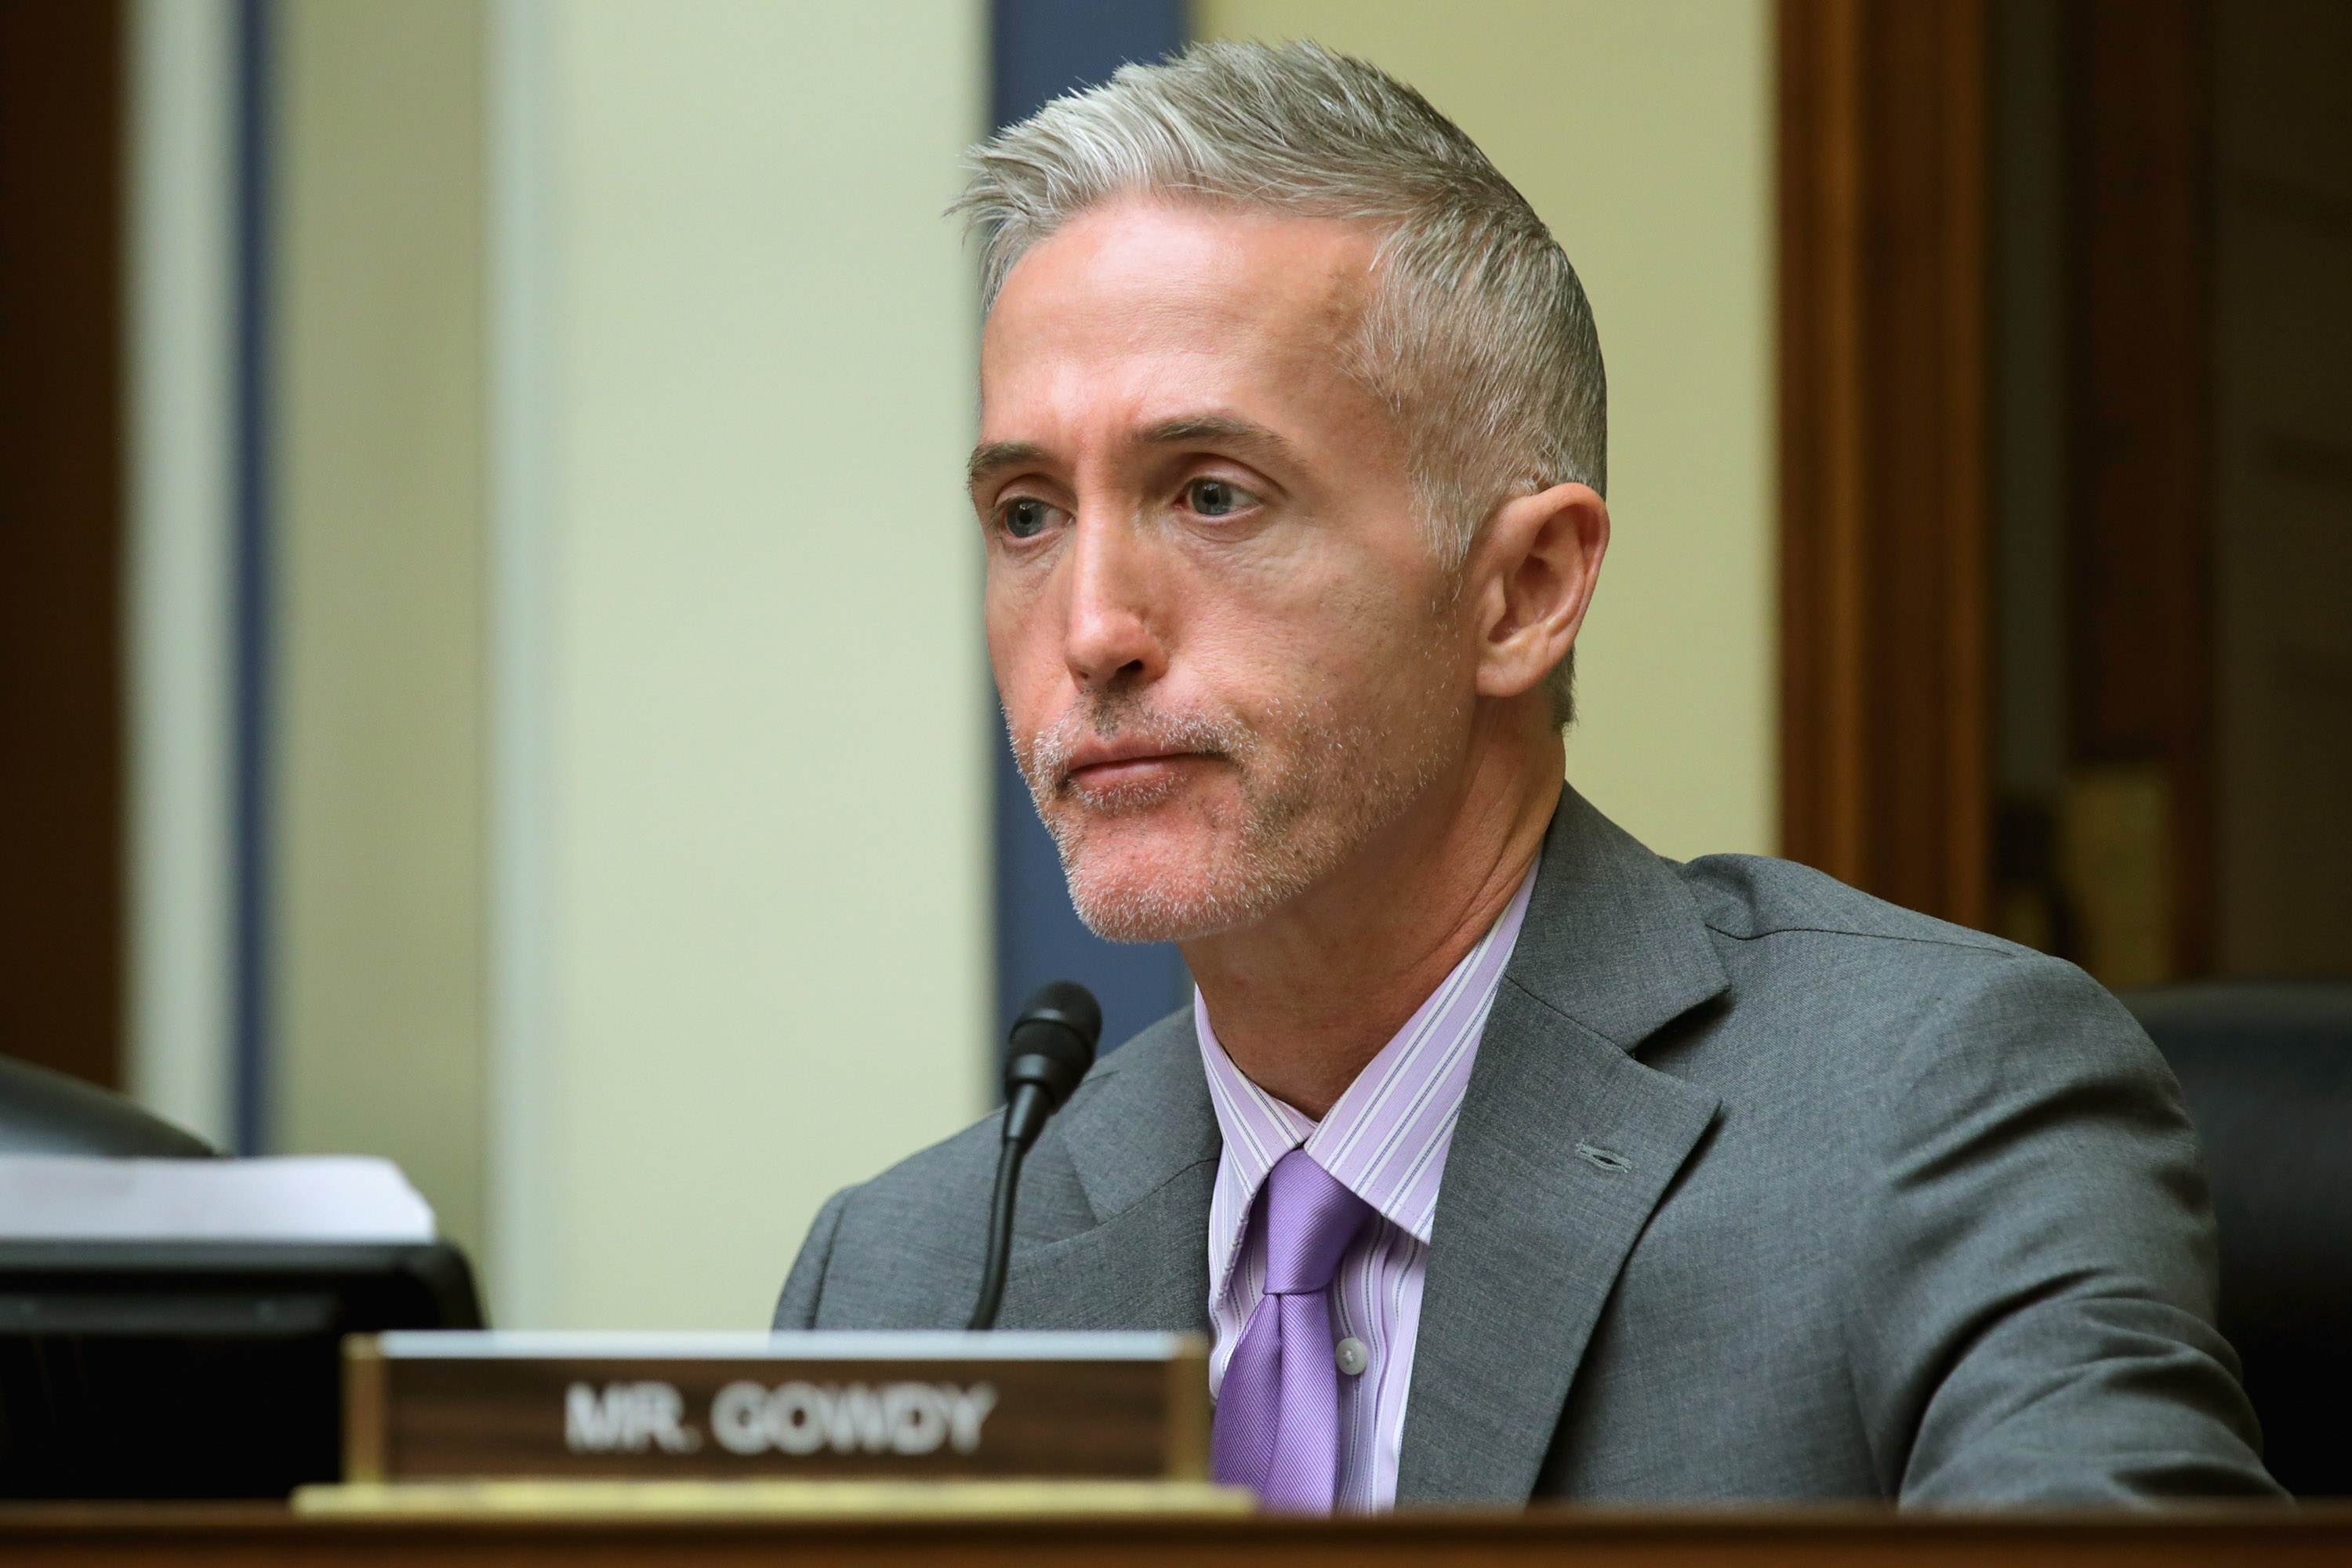 WASHINGTON, DC - NOVEMBER 03: The House Oversight and Government Reform Committee's Select Committee on Benghazi Chairman Trey Gowdy (R-SC) sports the beginnings of a beard as he questions witnesses about lapses in TSA screening in the Rayburn House Office Building on Capitol Hill November 3, 2015 in Washington, DC. Leaked to the news media earlier this year, a TSA inspector general's report found that investigators were able to slip through airport security with weapons and phony bombs more than 95 percent of the time at different airports across the country, constituting 'significant breeches,' according to Homeland Security Inspector General John Roth. (Photo by Chip Somodevilla/Getty Images)